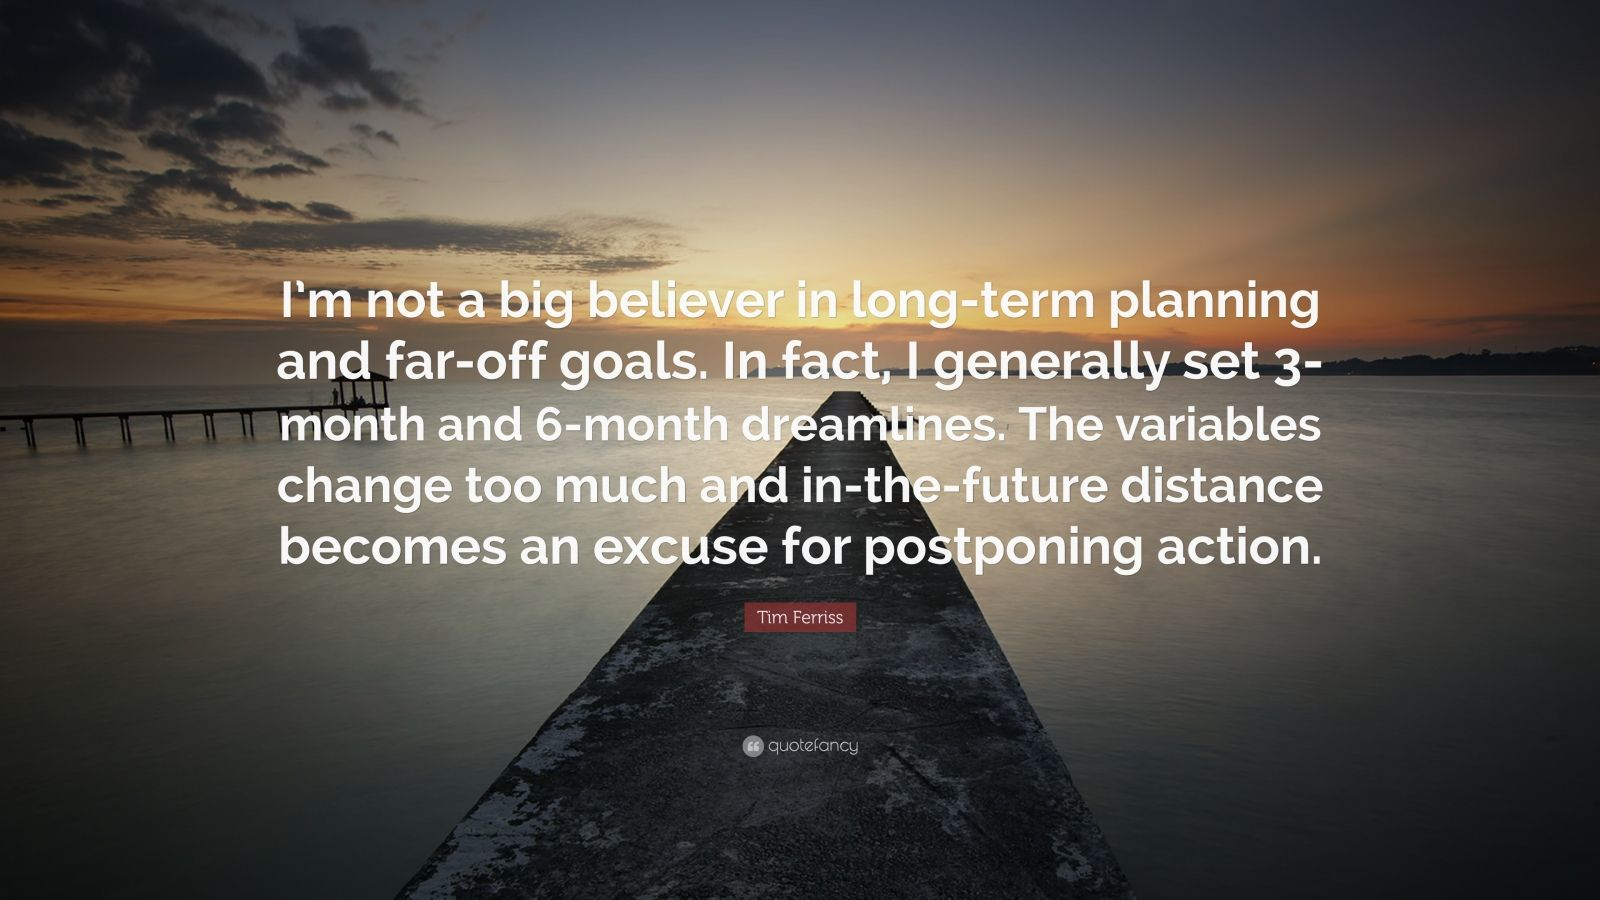 """Tim Ferriss Quote: """"I'm not a big believer in long-term planning and far-off goals. In fact, I generally set 3-month and 6-month dreamlines. The variables change too much and in-the-future distance becomes an excuse for postponing action."""""""